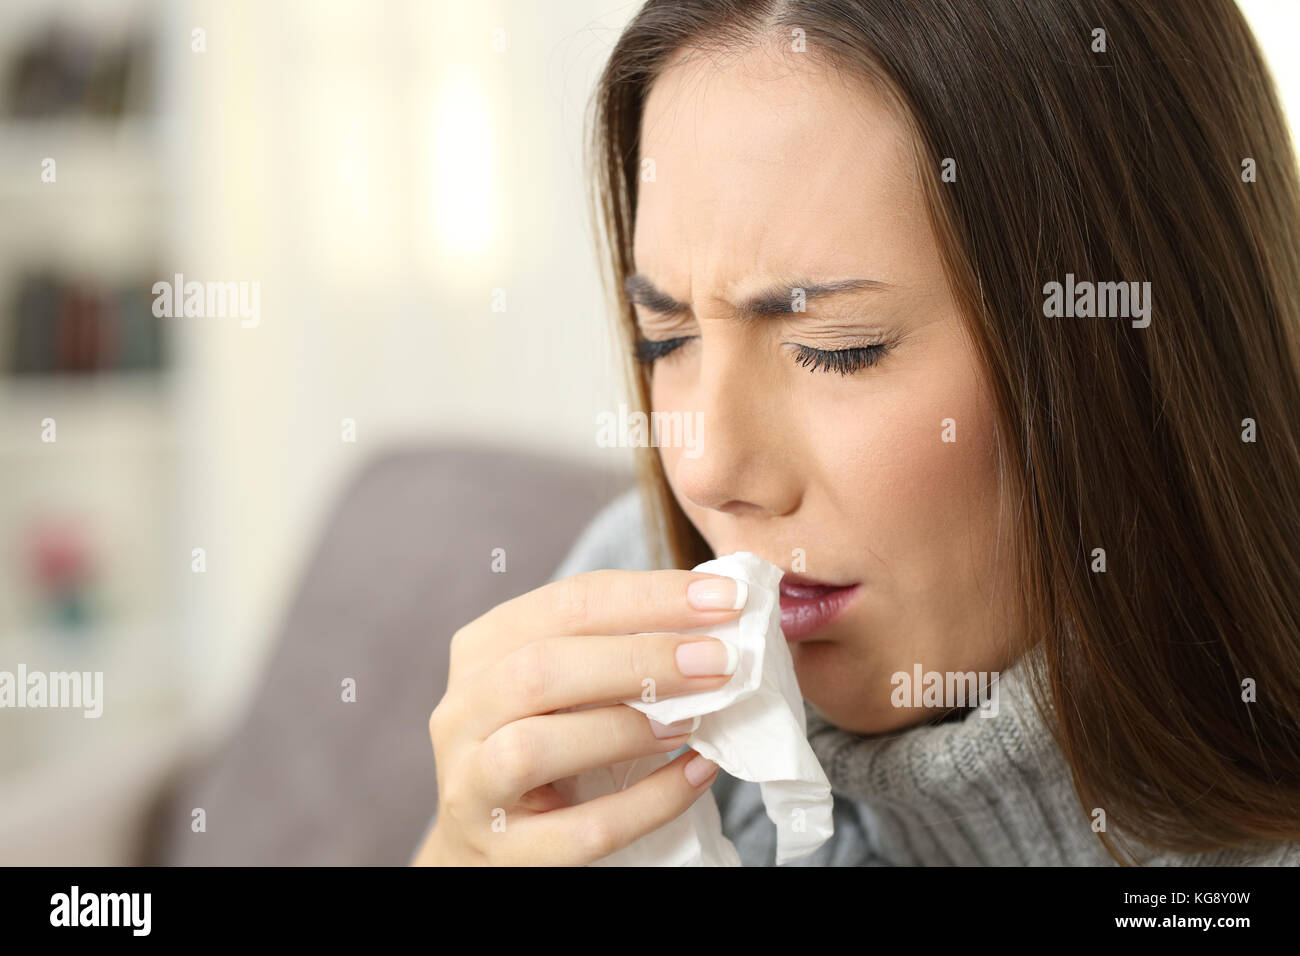 Ill woman coughing using a tissue sitting on a couch in the living room in a house interior - Stock Image